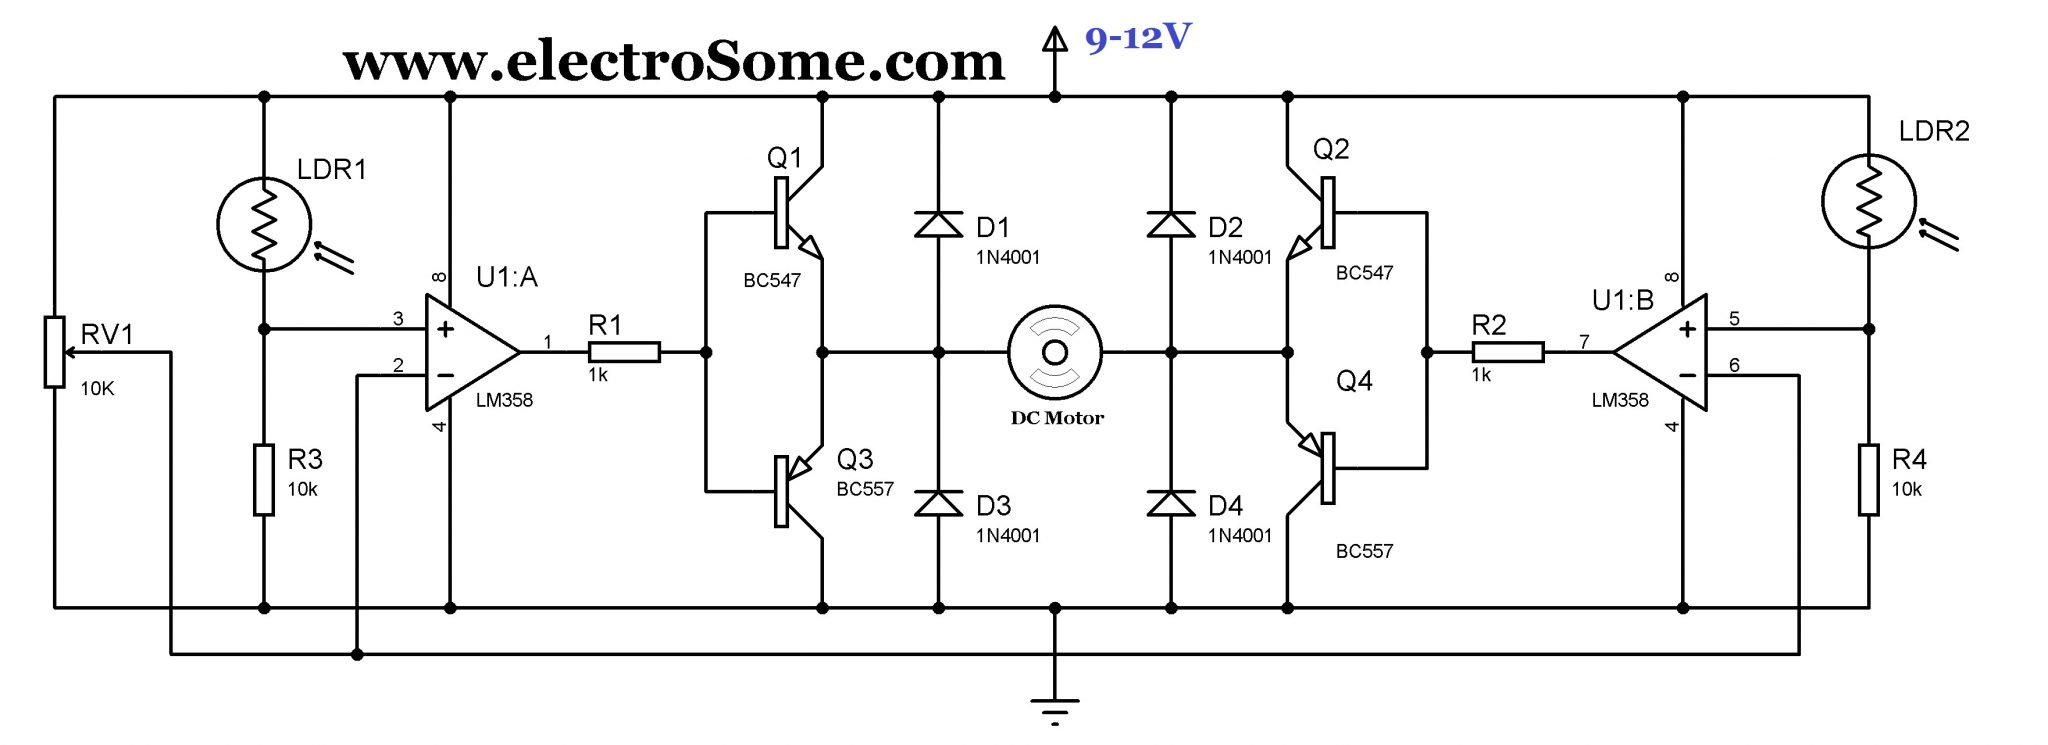 Simple Solar Tracker Circuit using LM358